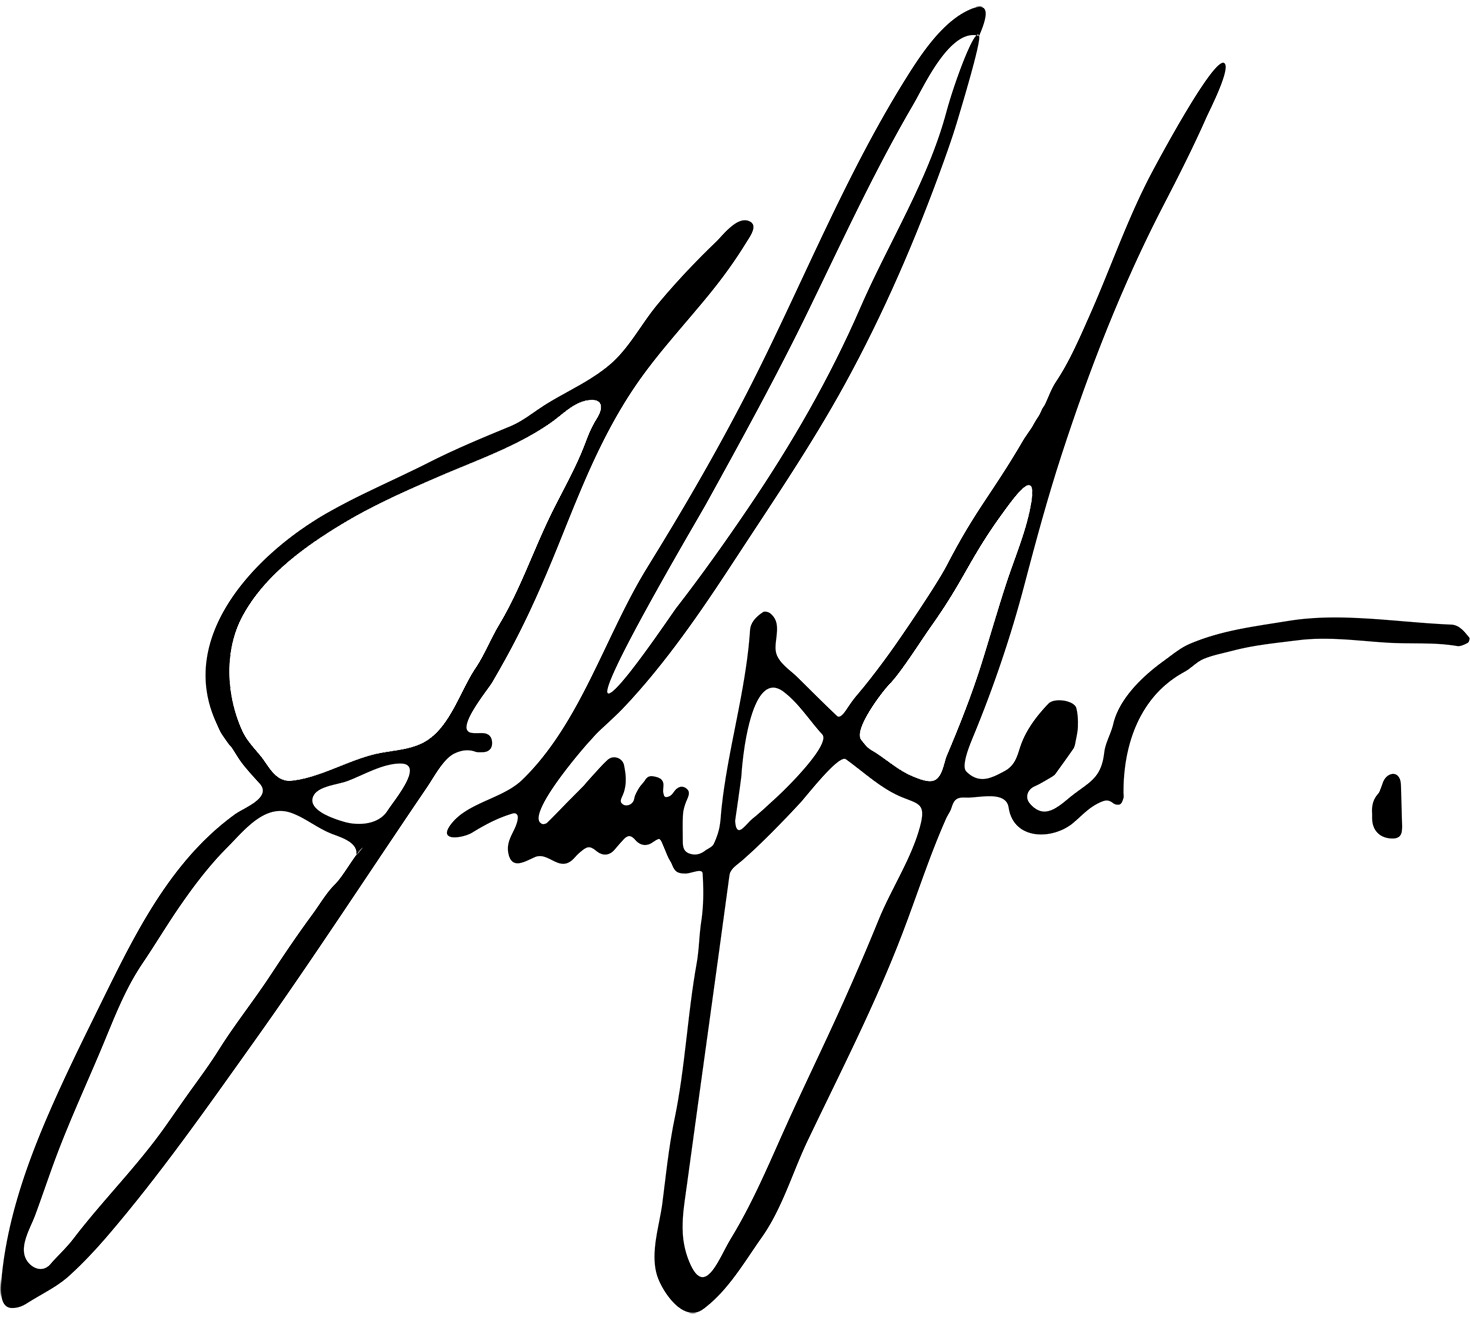 Jess Laufer's Signature